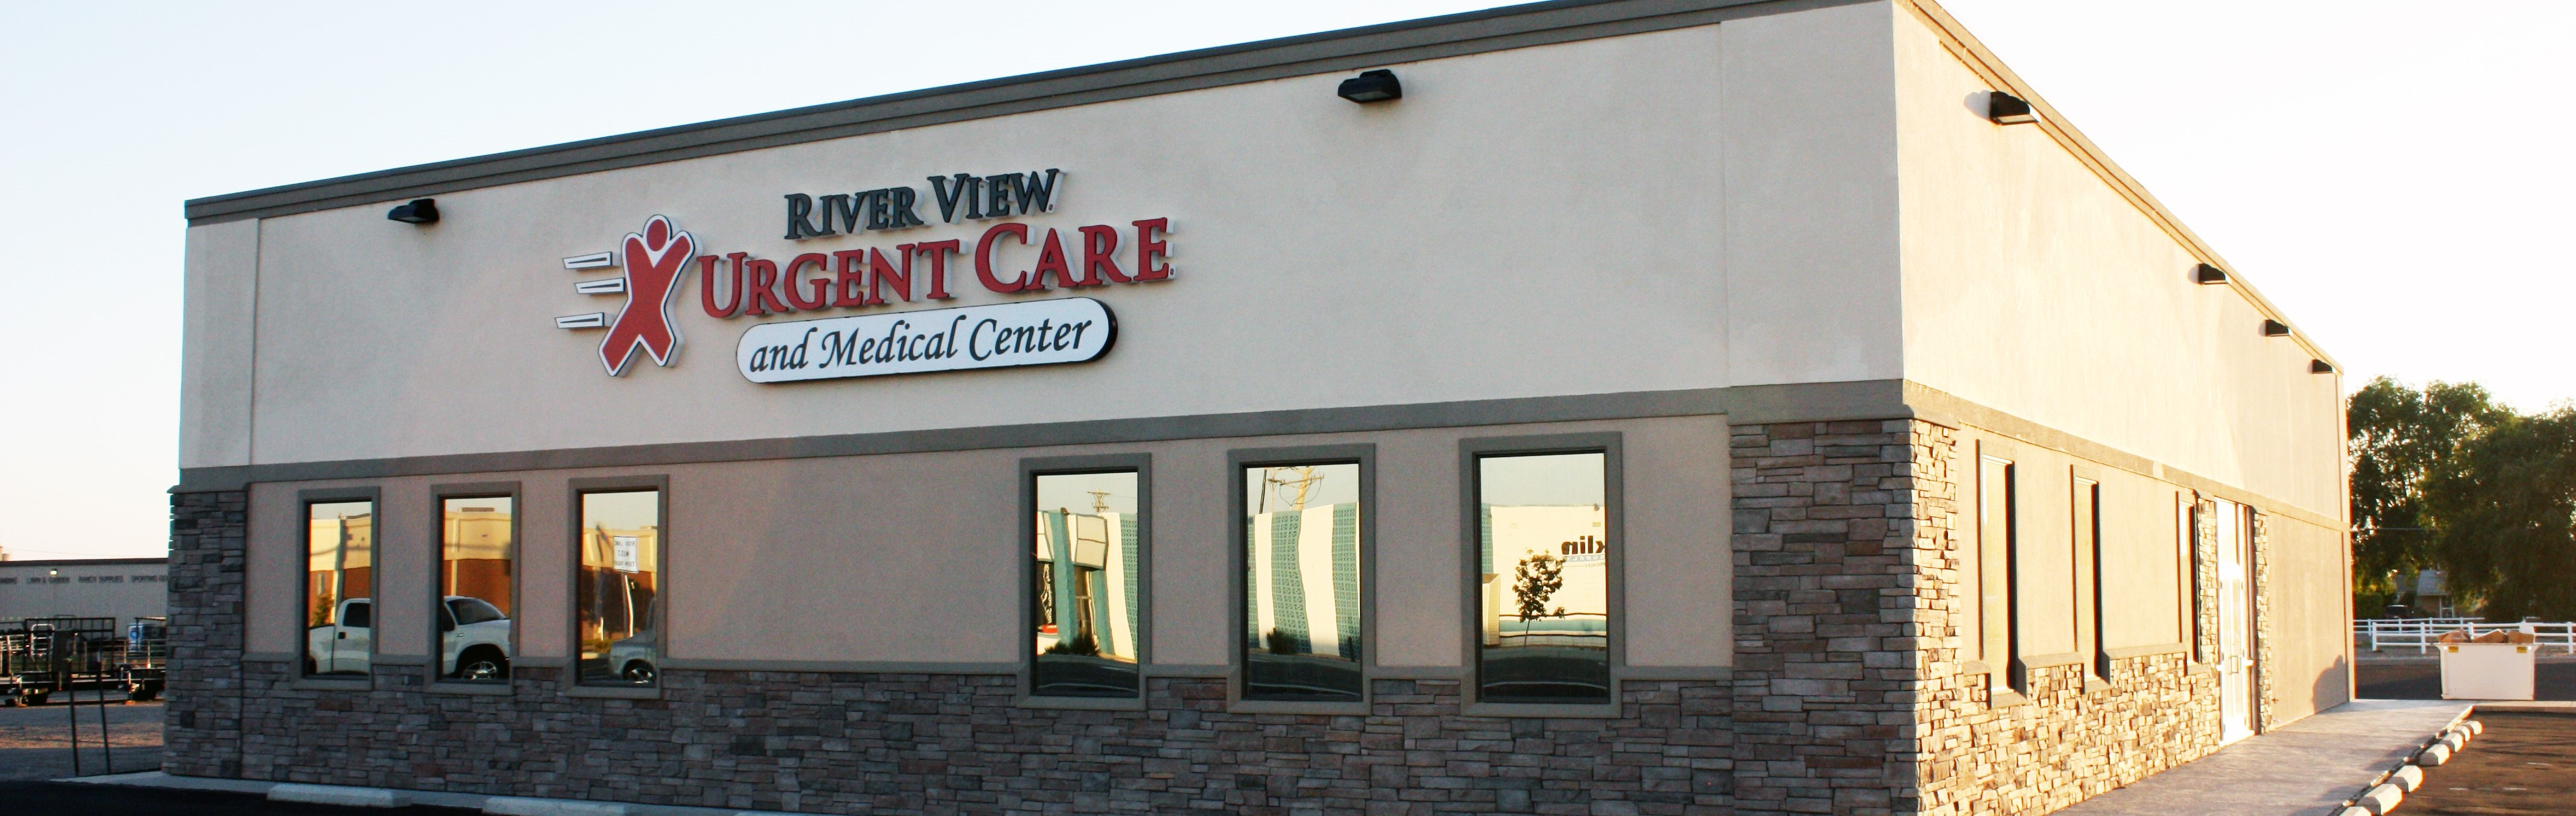 River View Urgent Care And Medical Center